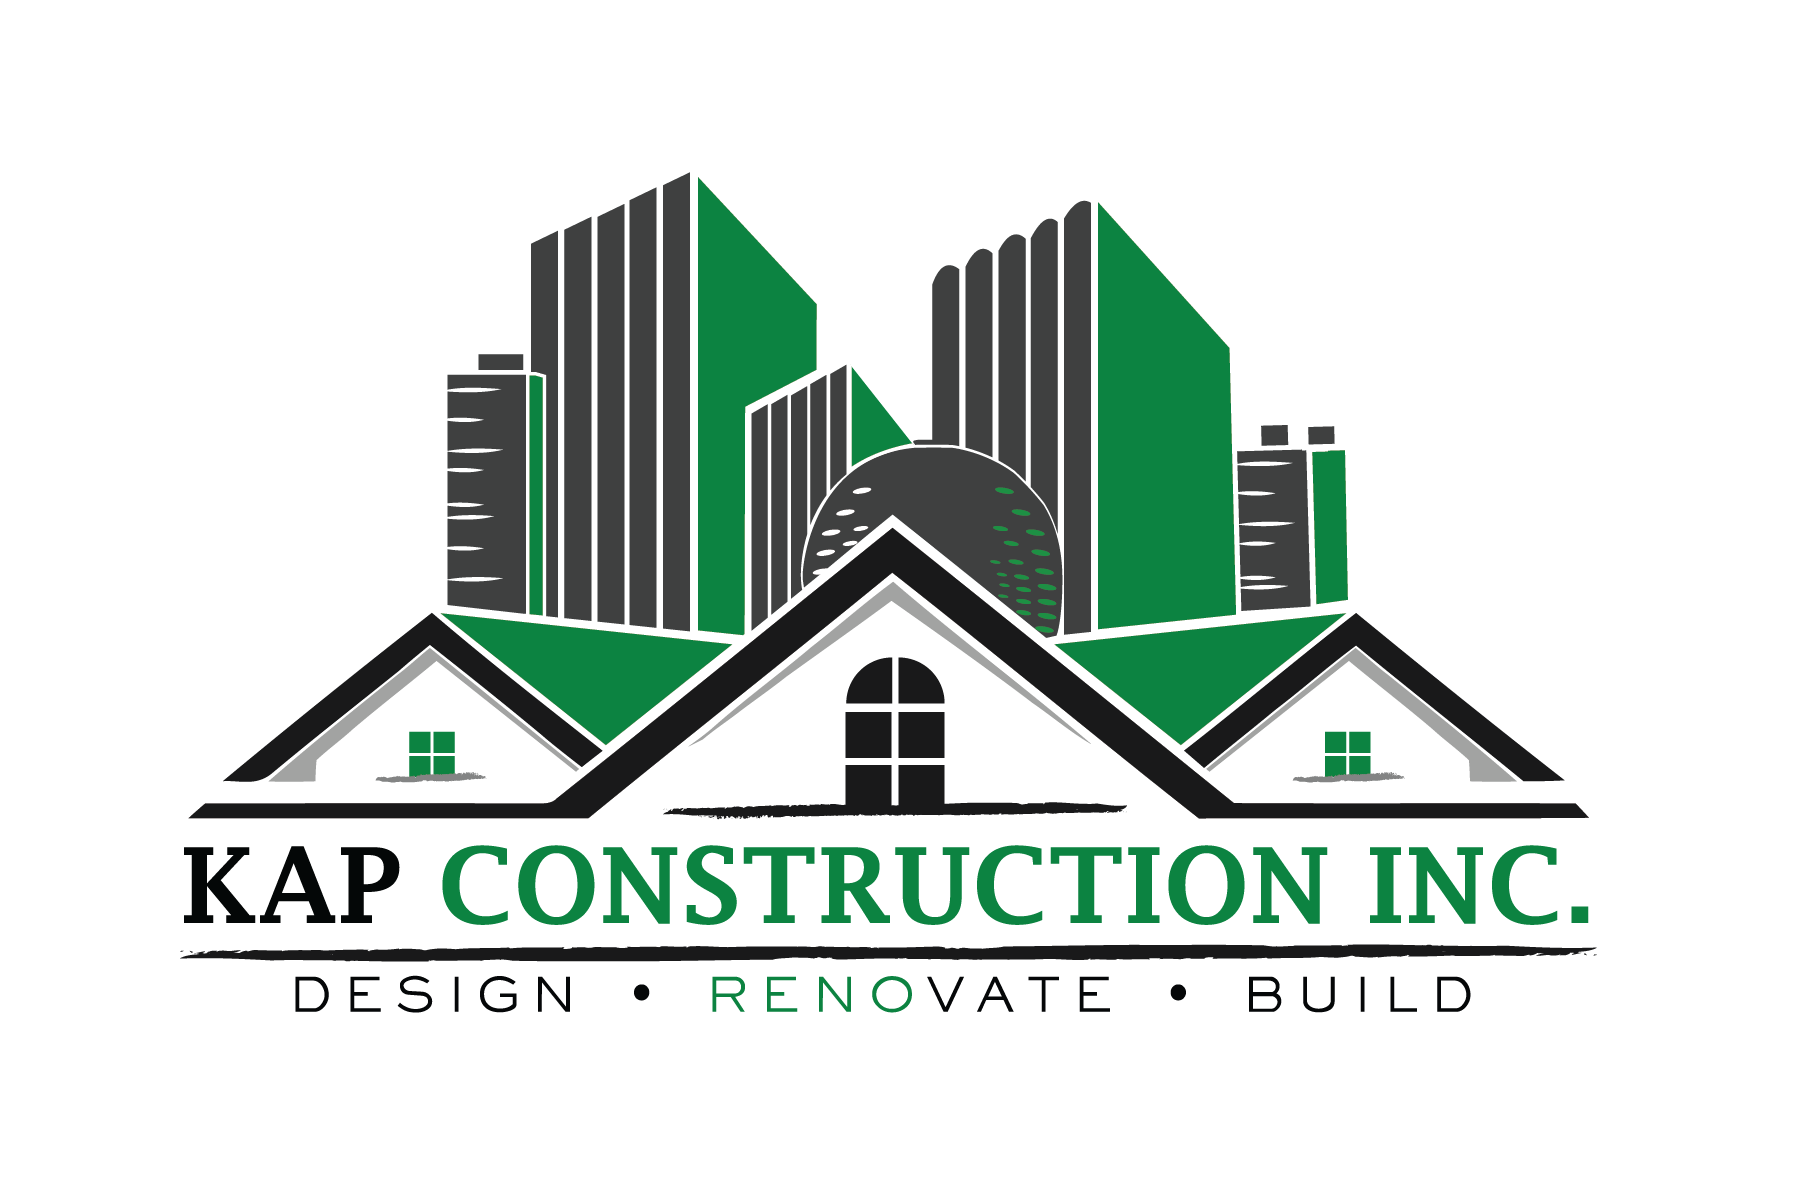 Kap Construction Inc